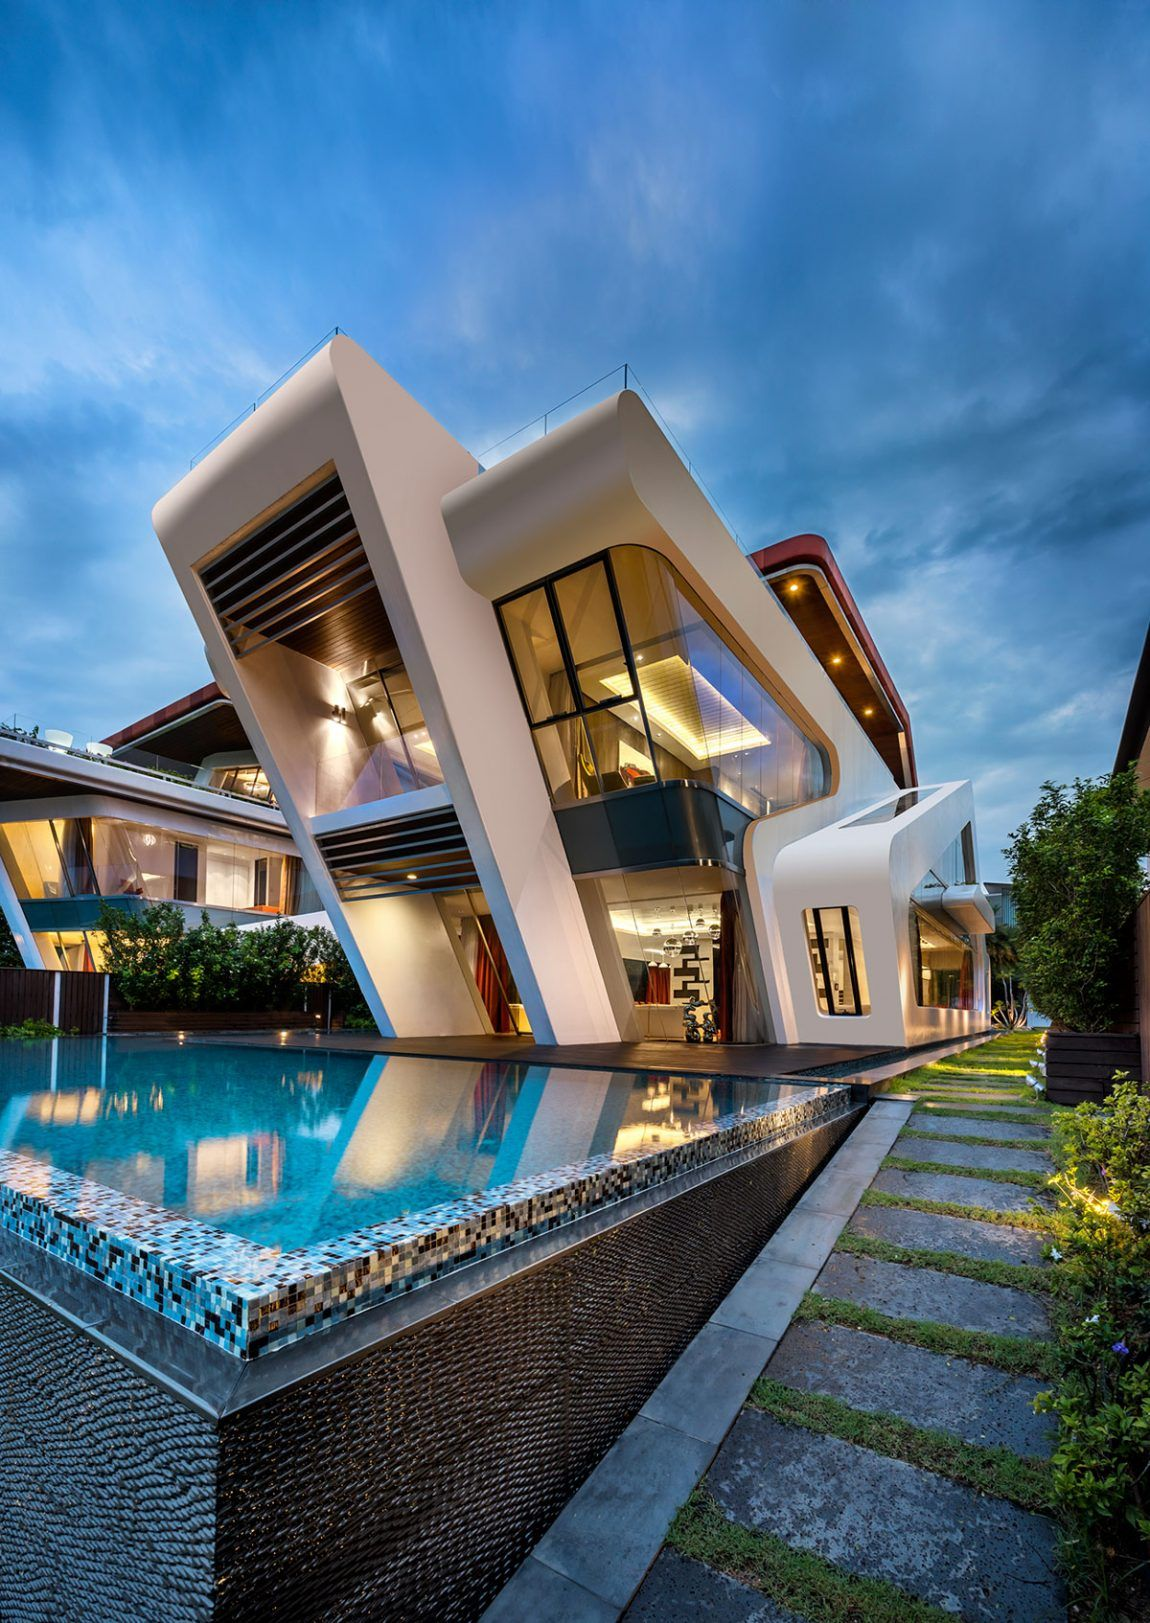 Mercurio Design Lab Create a Modern Villa in Singapore ...